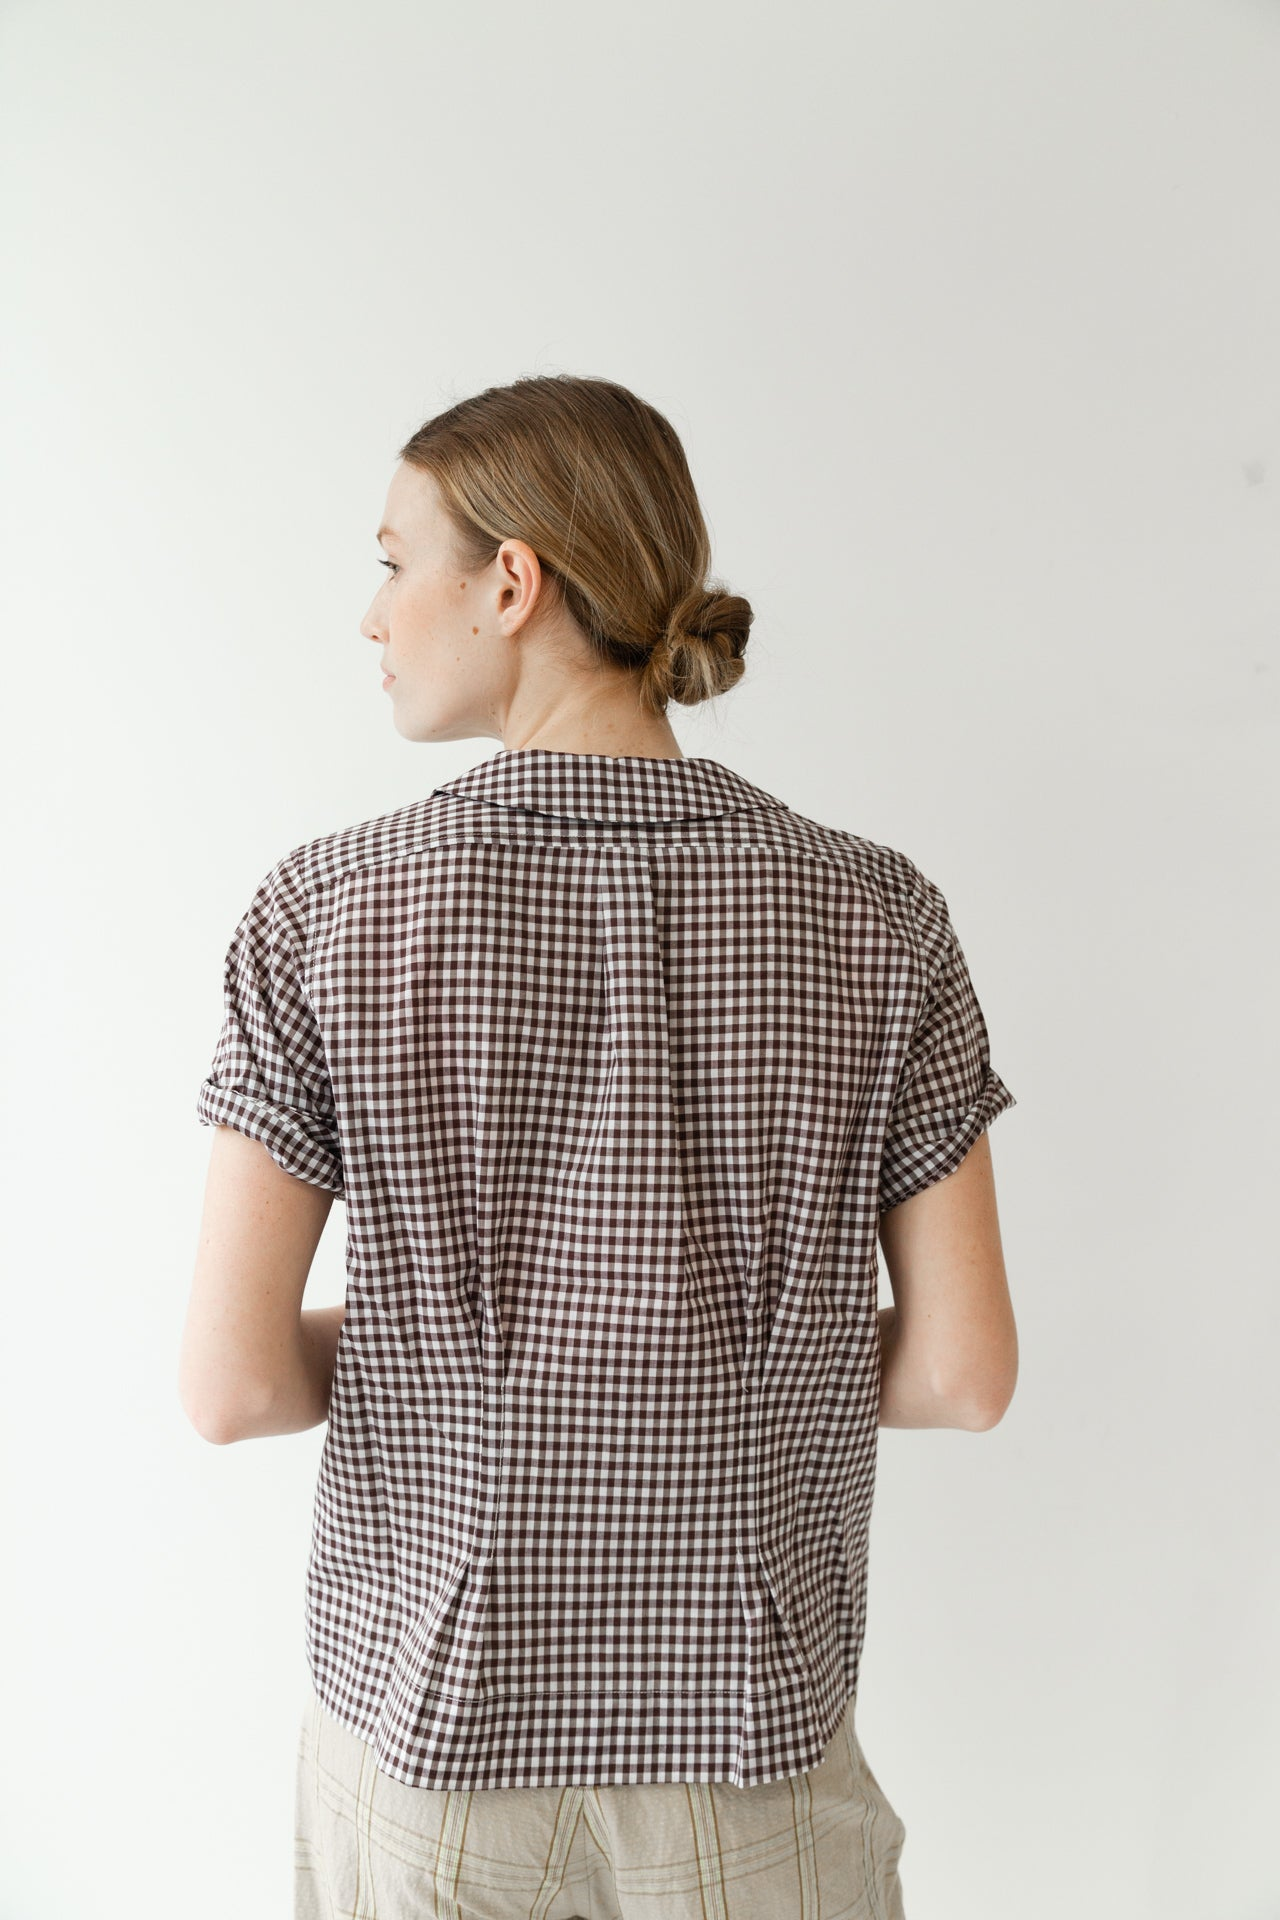 WESTLEY TOP | BROWN GINGHAM